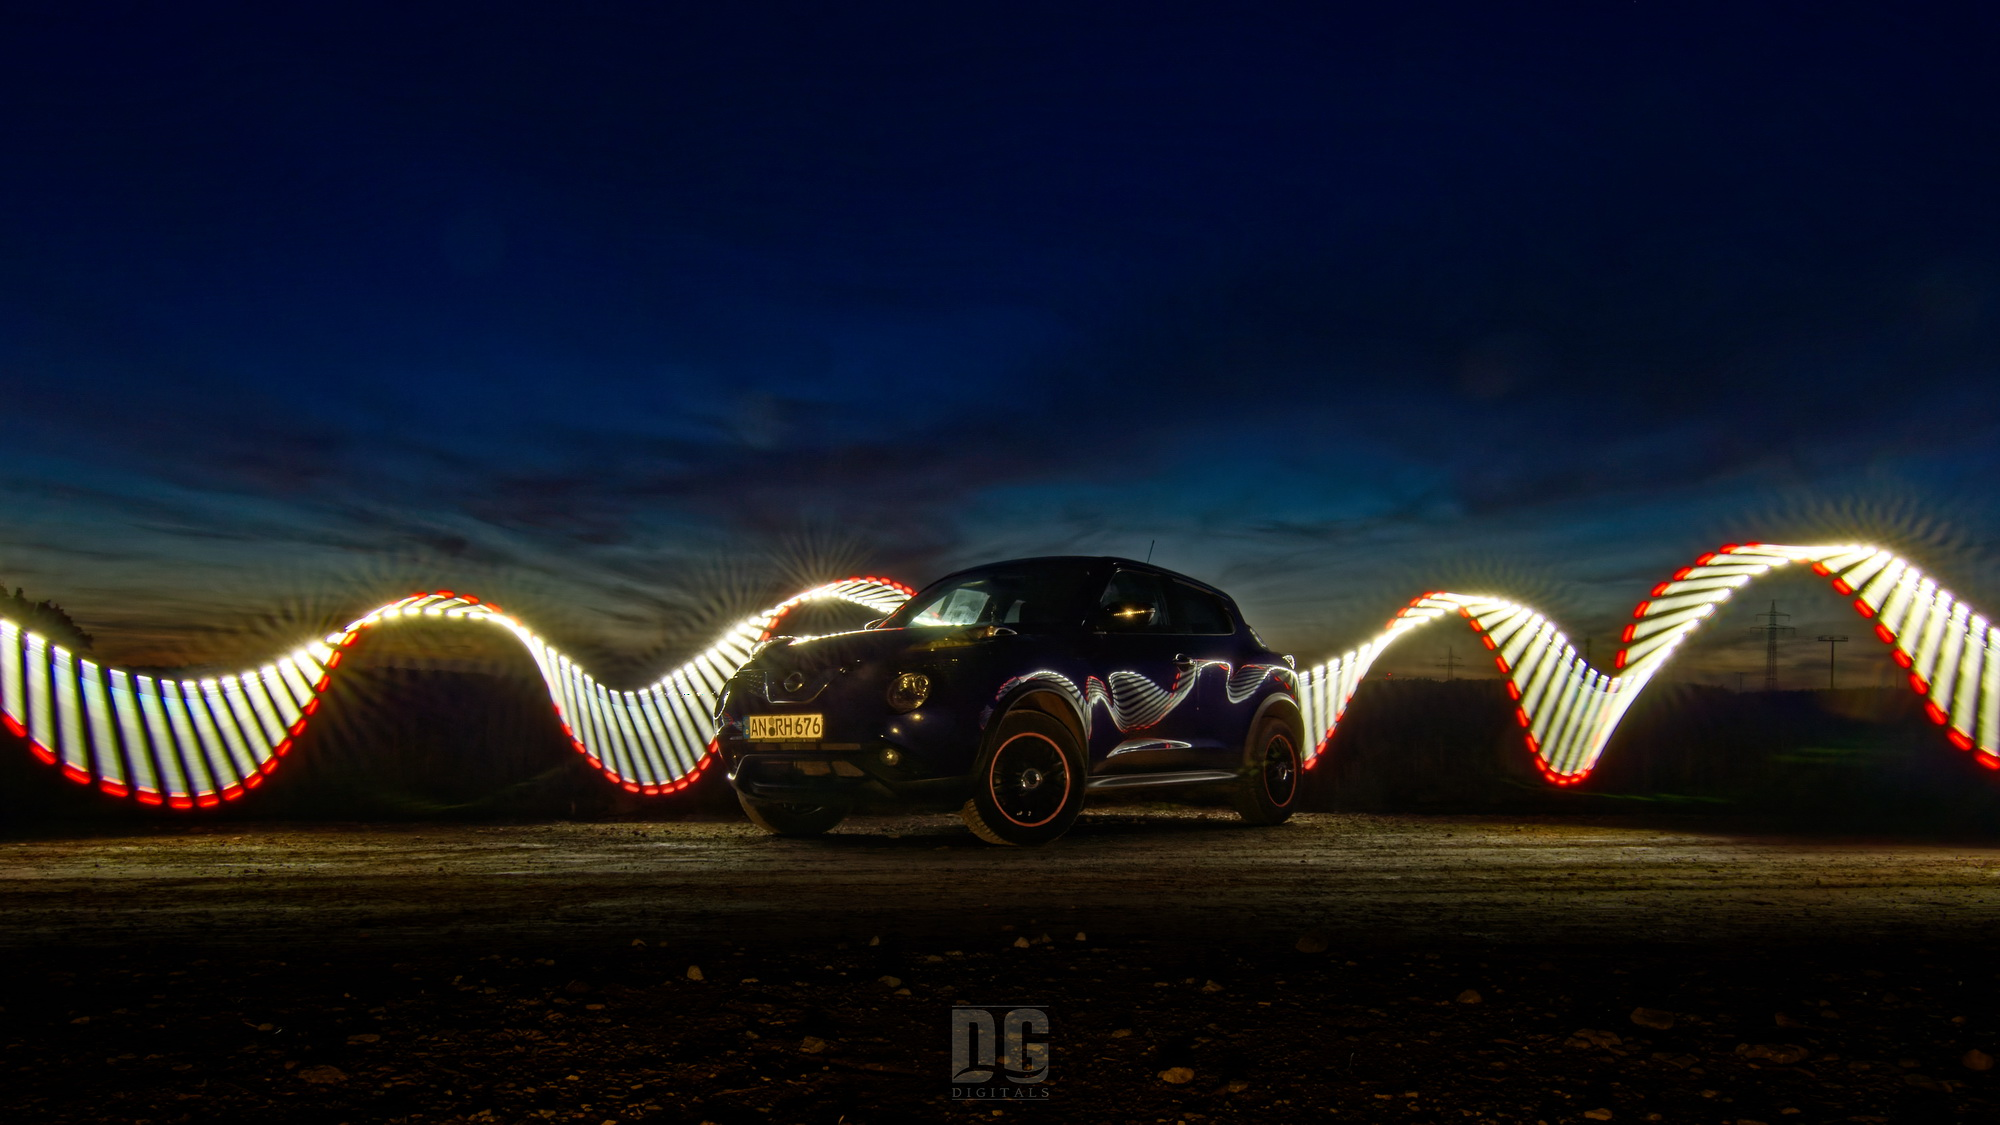 Lightpainting – Nissan Juke 1.5 dCi Tekna (2015 series)